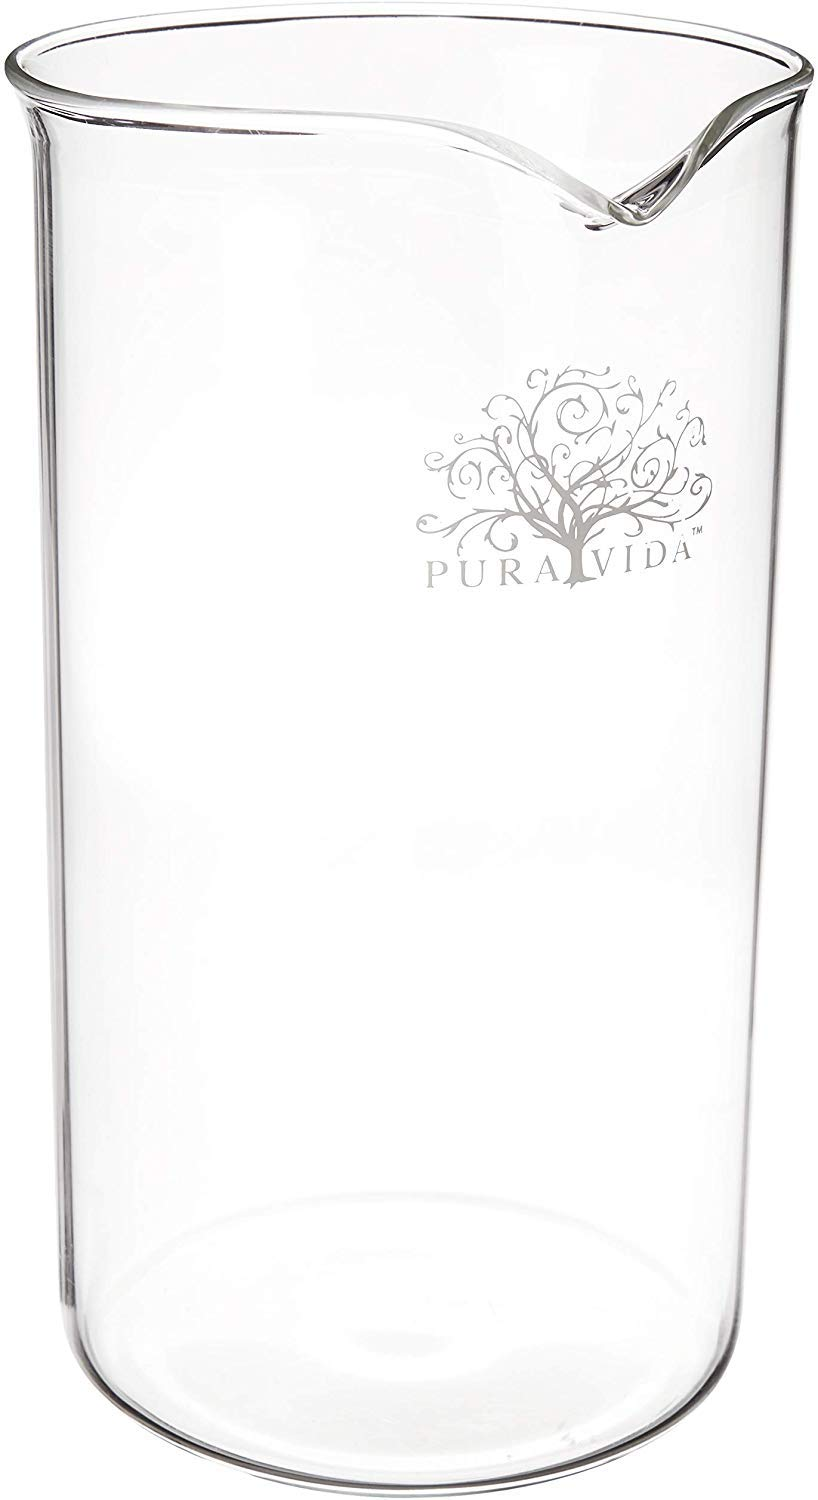 Pura Vida French Press Replacement Glass 8 Cup, 34 Ounce, Universal Fit for Bodum Bonjour - THICK Heat Resistant Borosilicate Glass Carafe - Spare French Press Beaker for 34 oz, 1000 ml Coffee Press